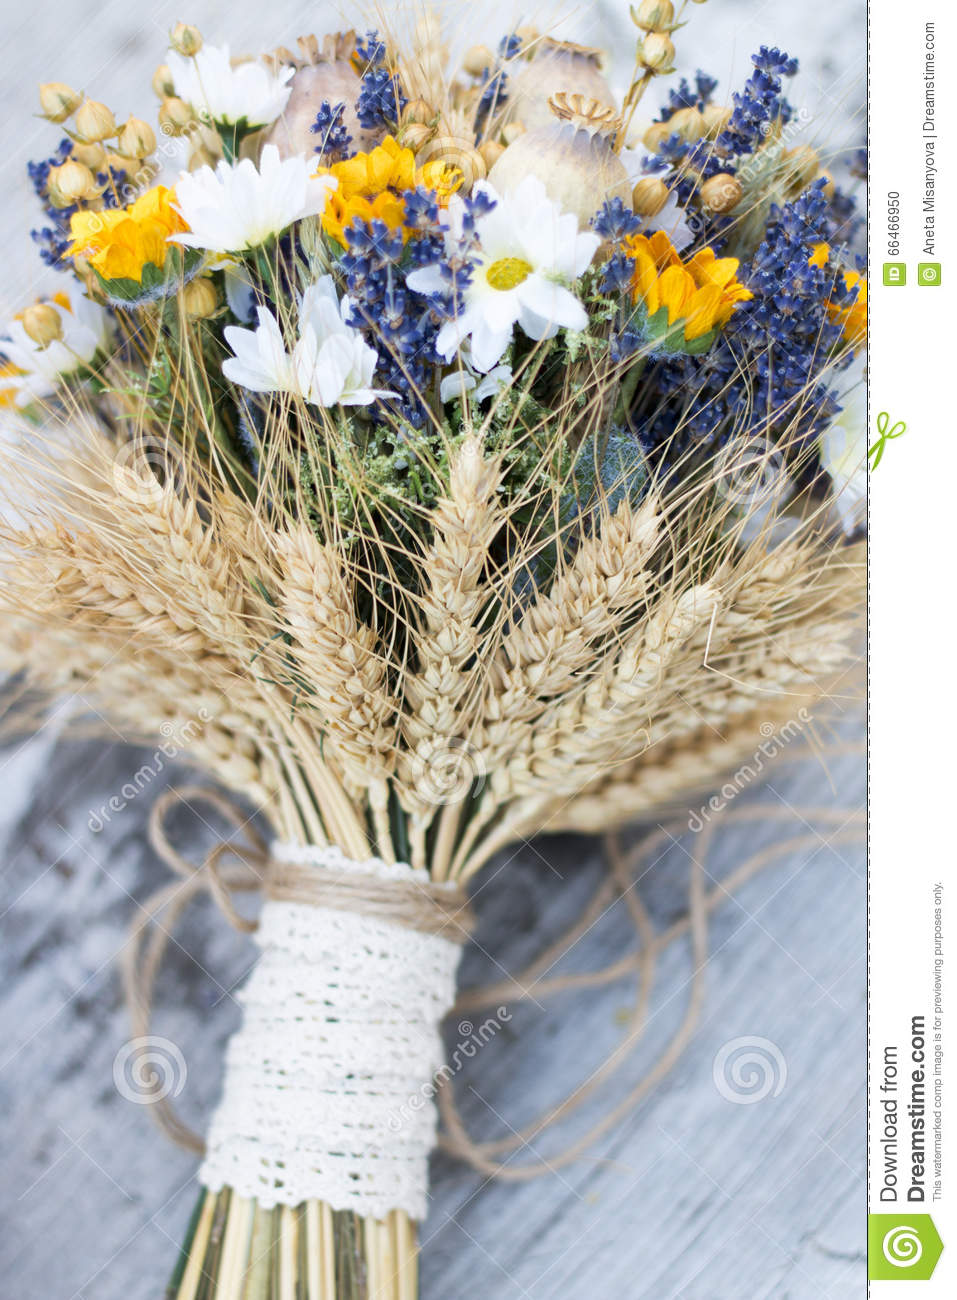 Wedding Bouquet Of Dry Flowers Stock Photo - Image of bunch, floral ...